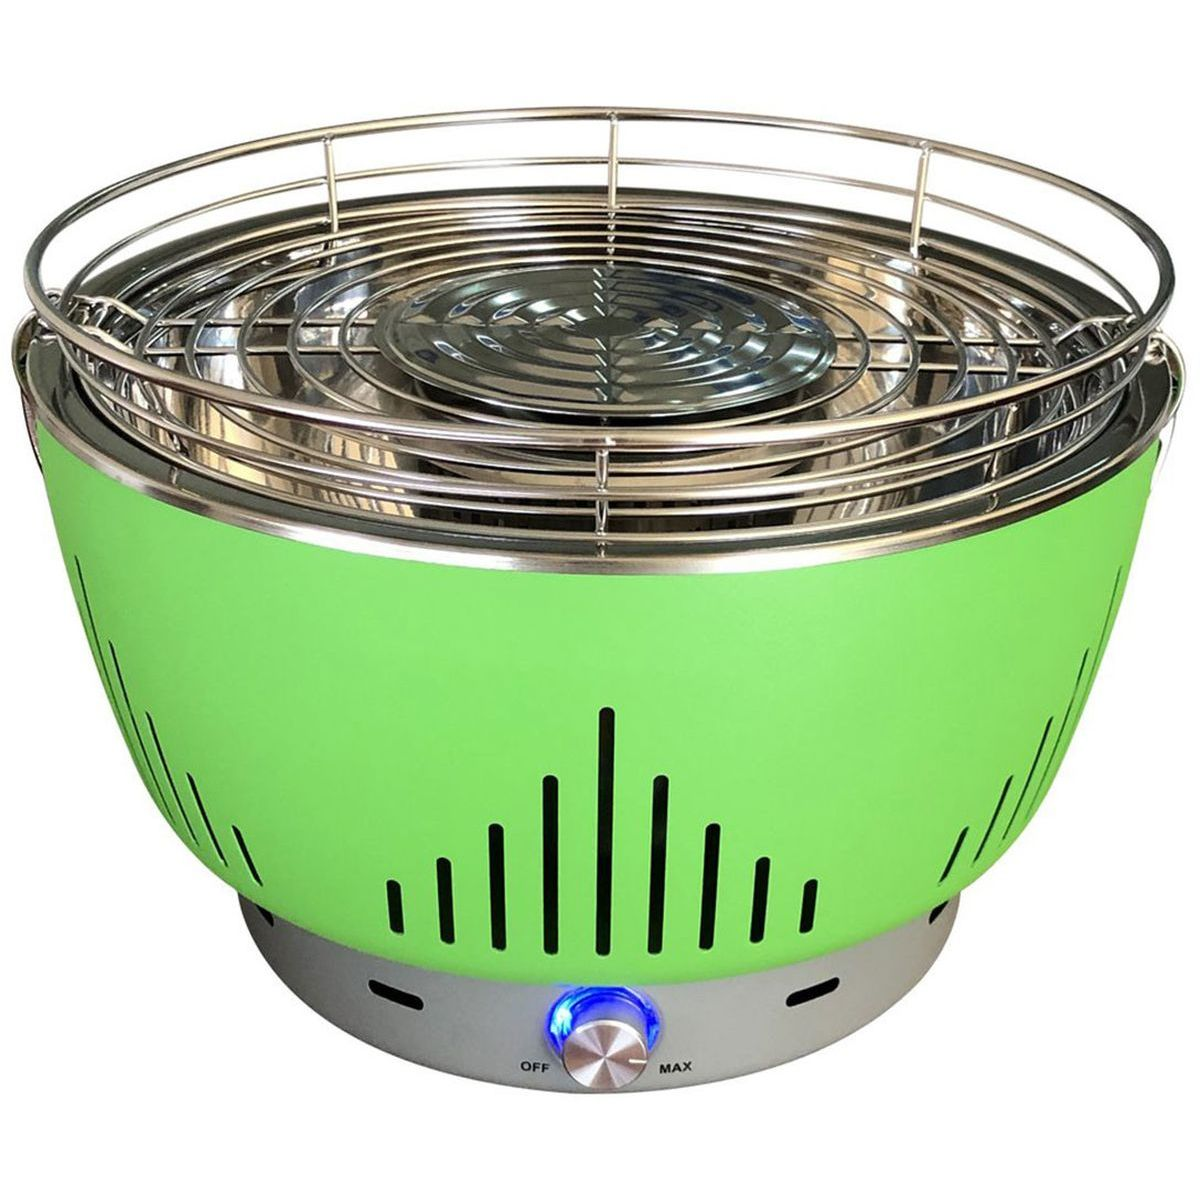 WPPO Portable Fan Controlled Charcoal BBQ Grill With Bag - Green